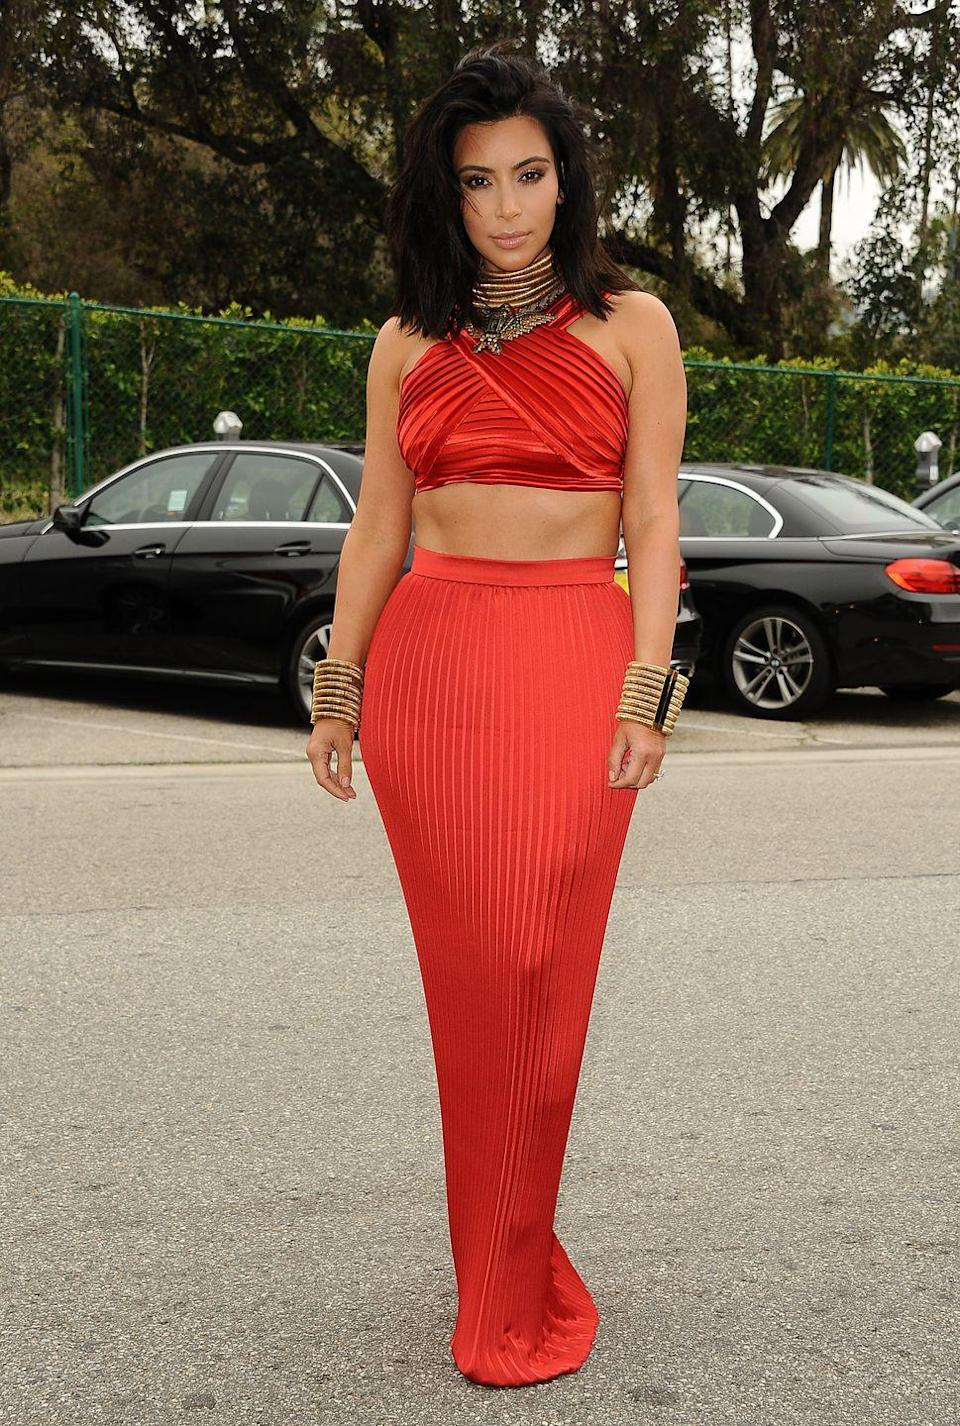 <p>It probably wasn't intentional, but the red crop top and skirt combo Kim Kardashian wore in 2015 reminds us of Jasmine's red outfit so much that we have to wonder….</p>